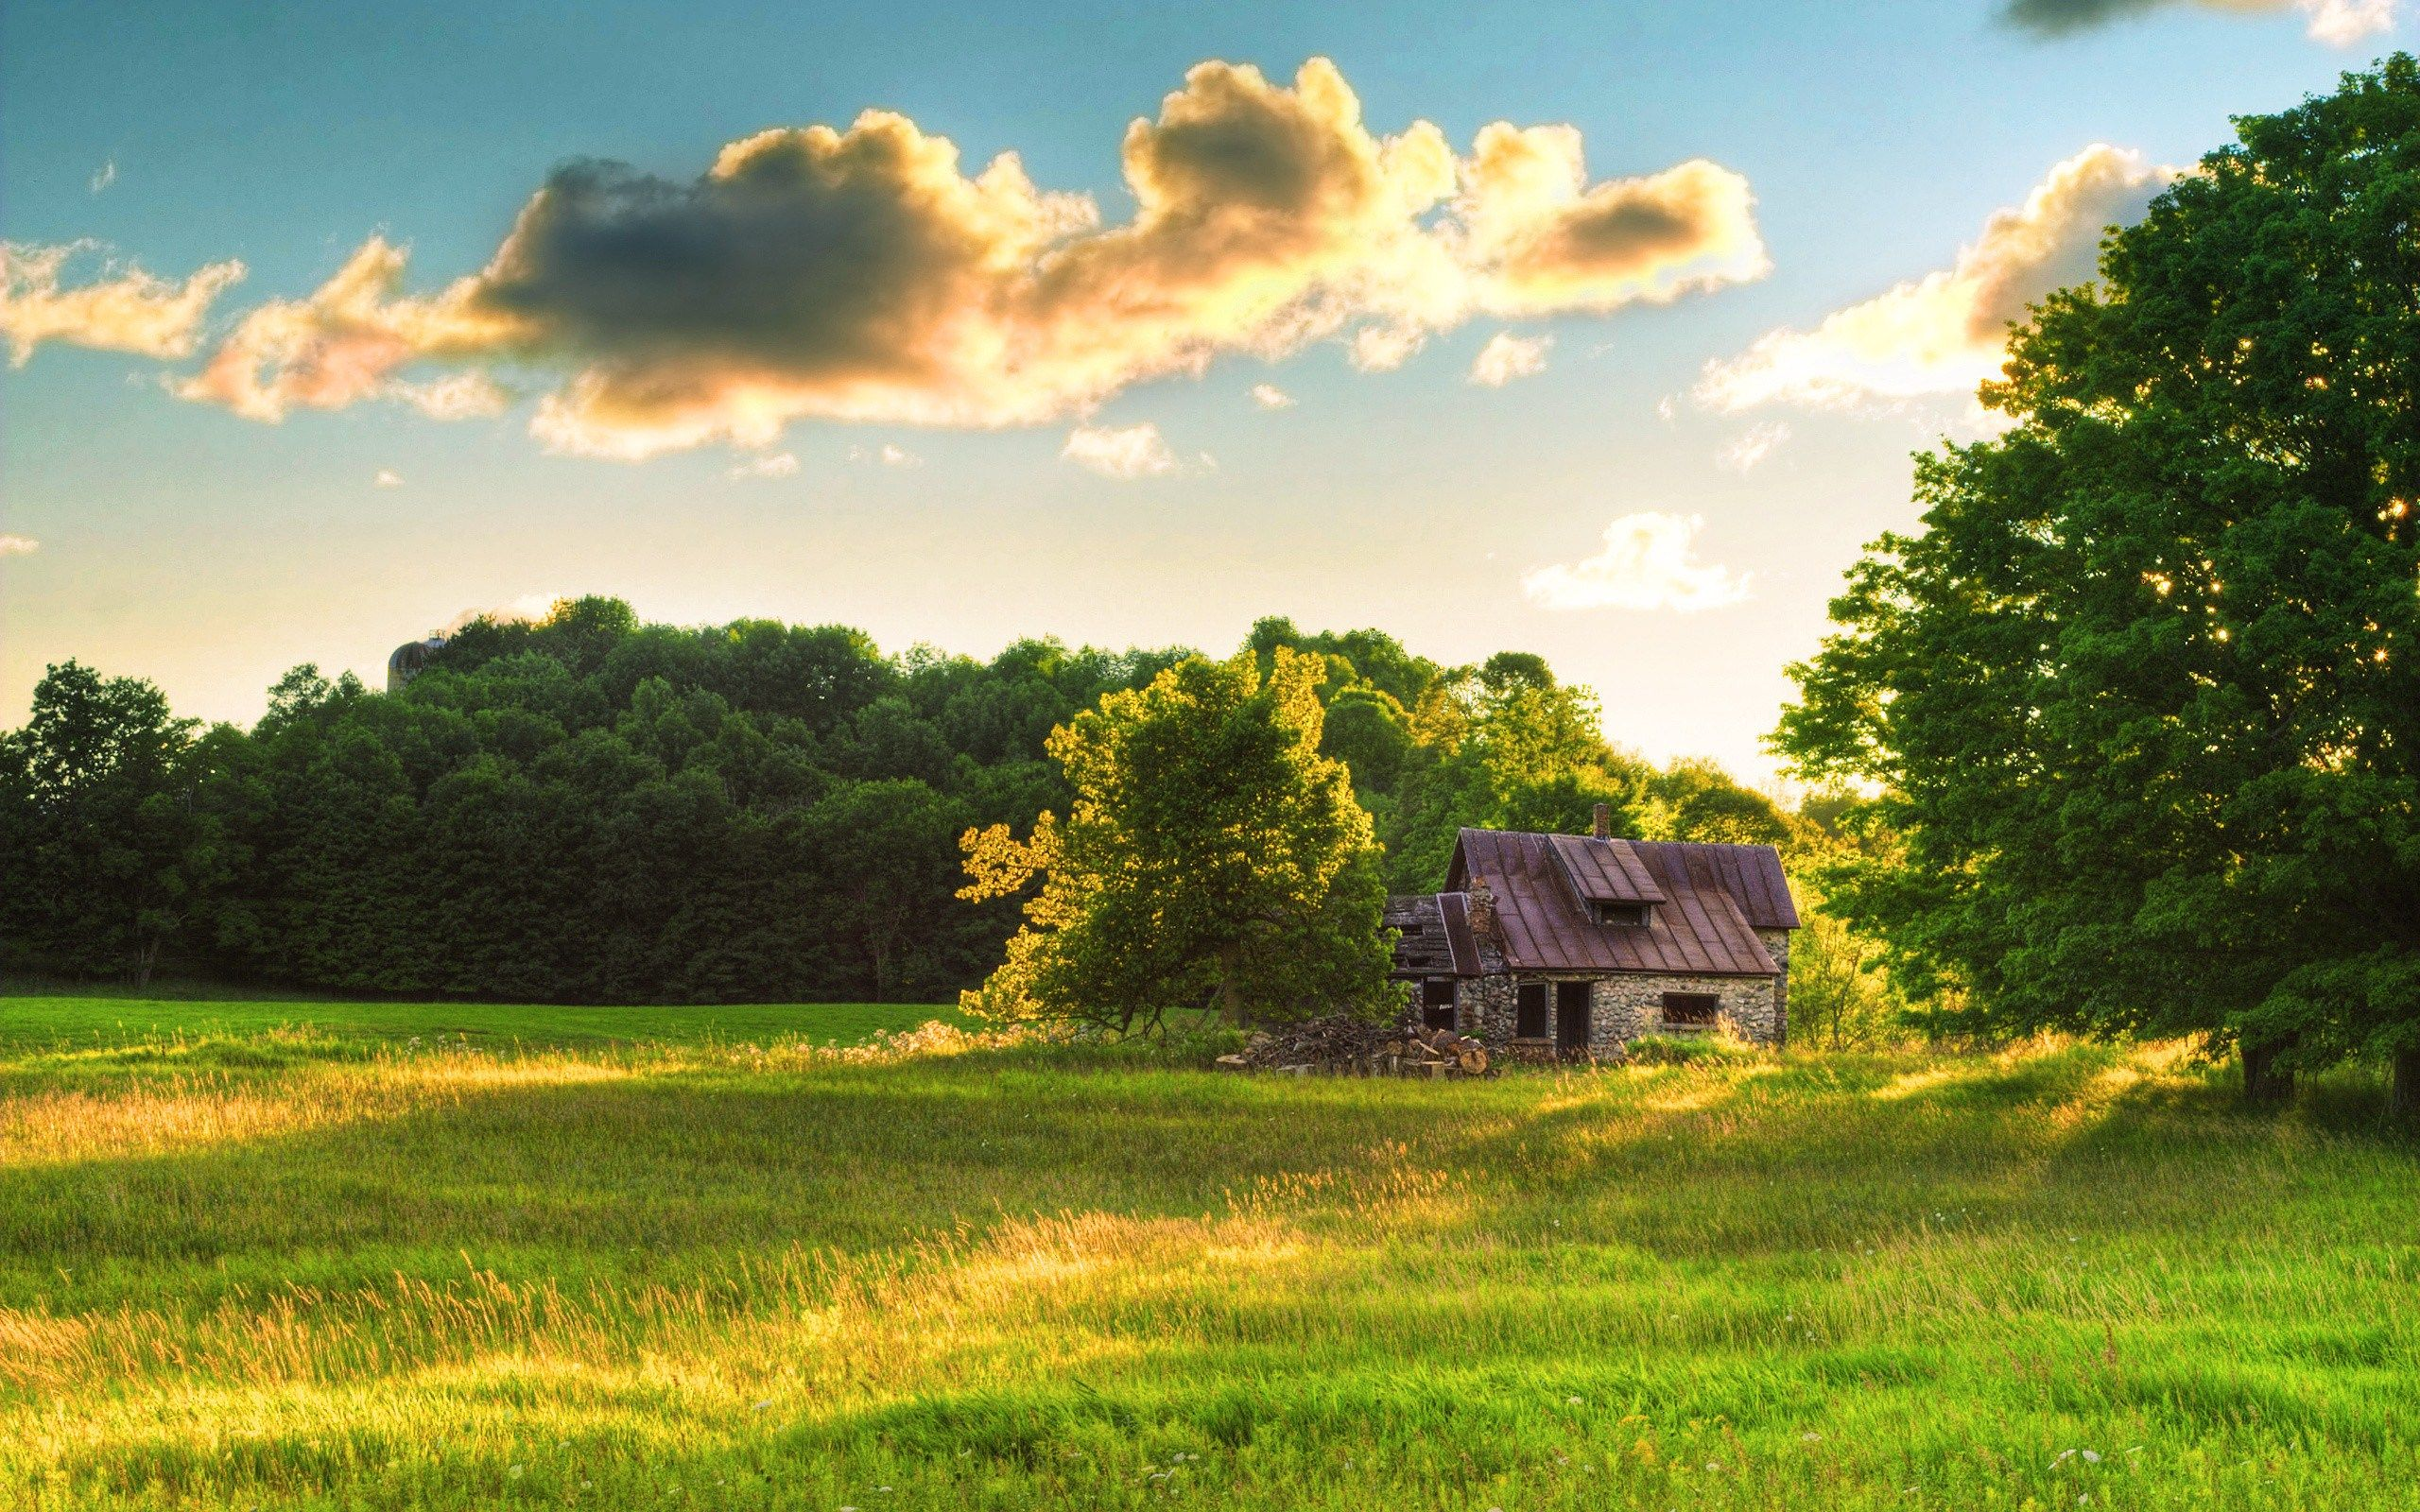 Small House Abandoned Field Forest Green Wide Hd Wallpaper